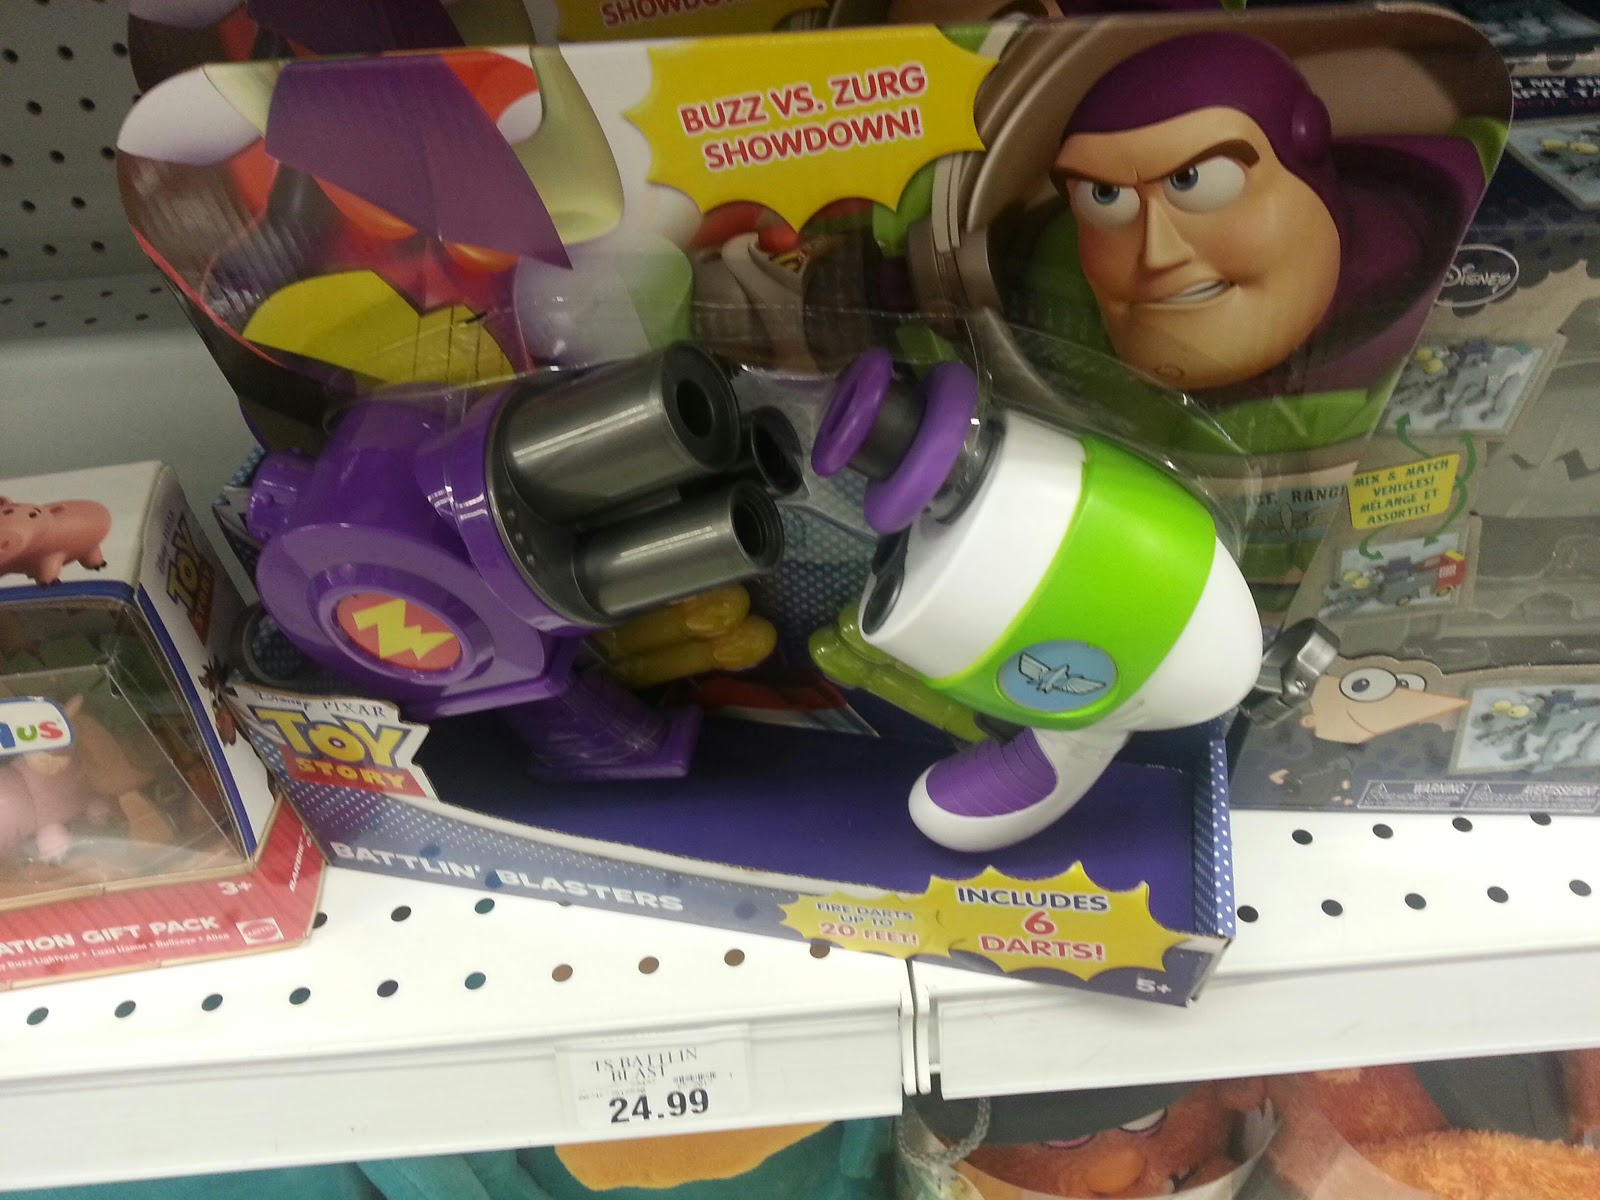 Toy R Us Toy Herobrine : Toys r us visit some new blasters